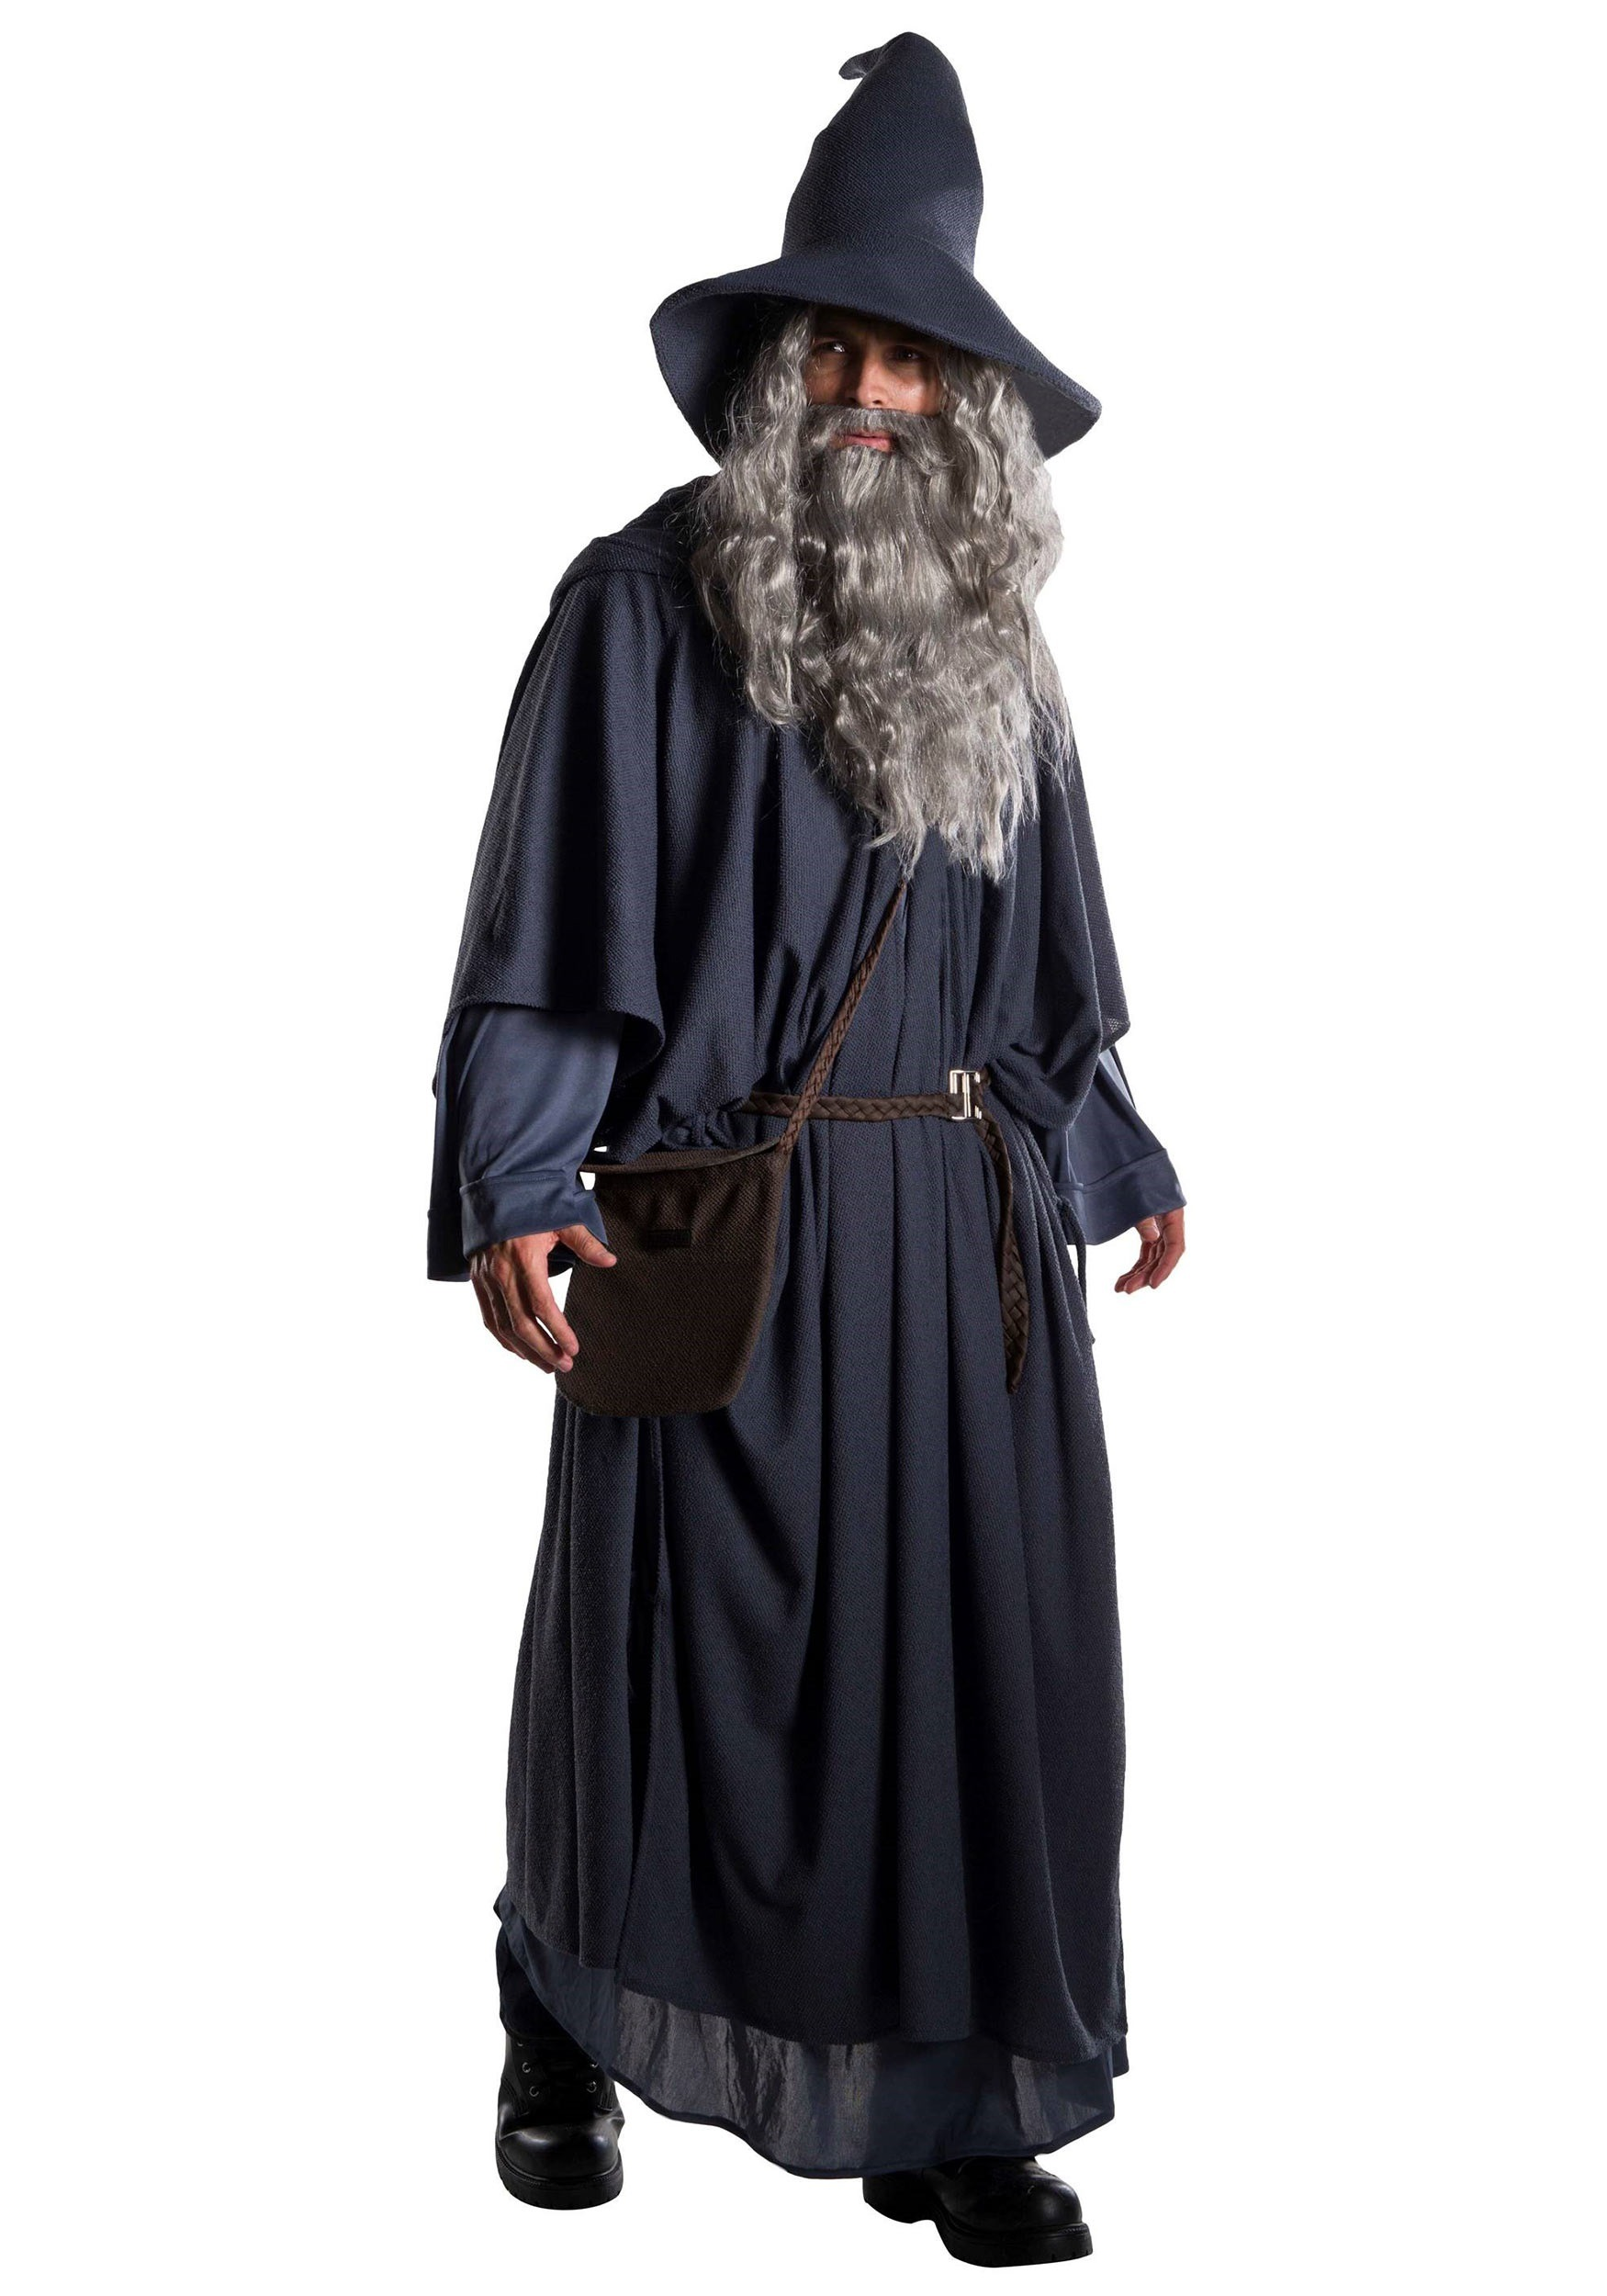 80a9f1cadee48 Lord of the Rings & Hobbit Costumes - HalloweenCostumes.com